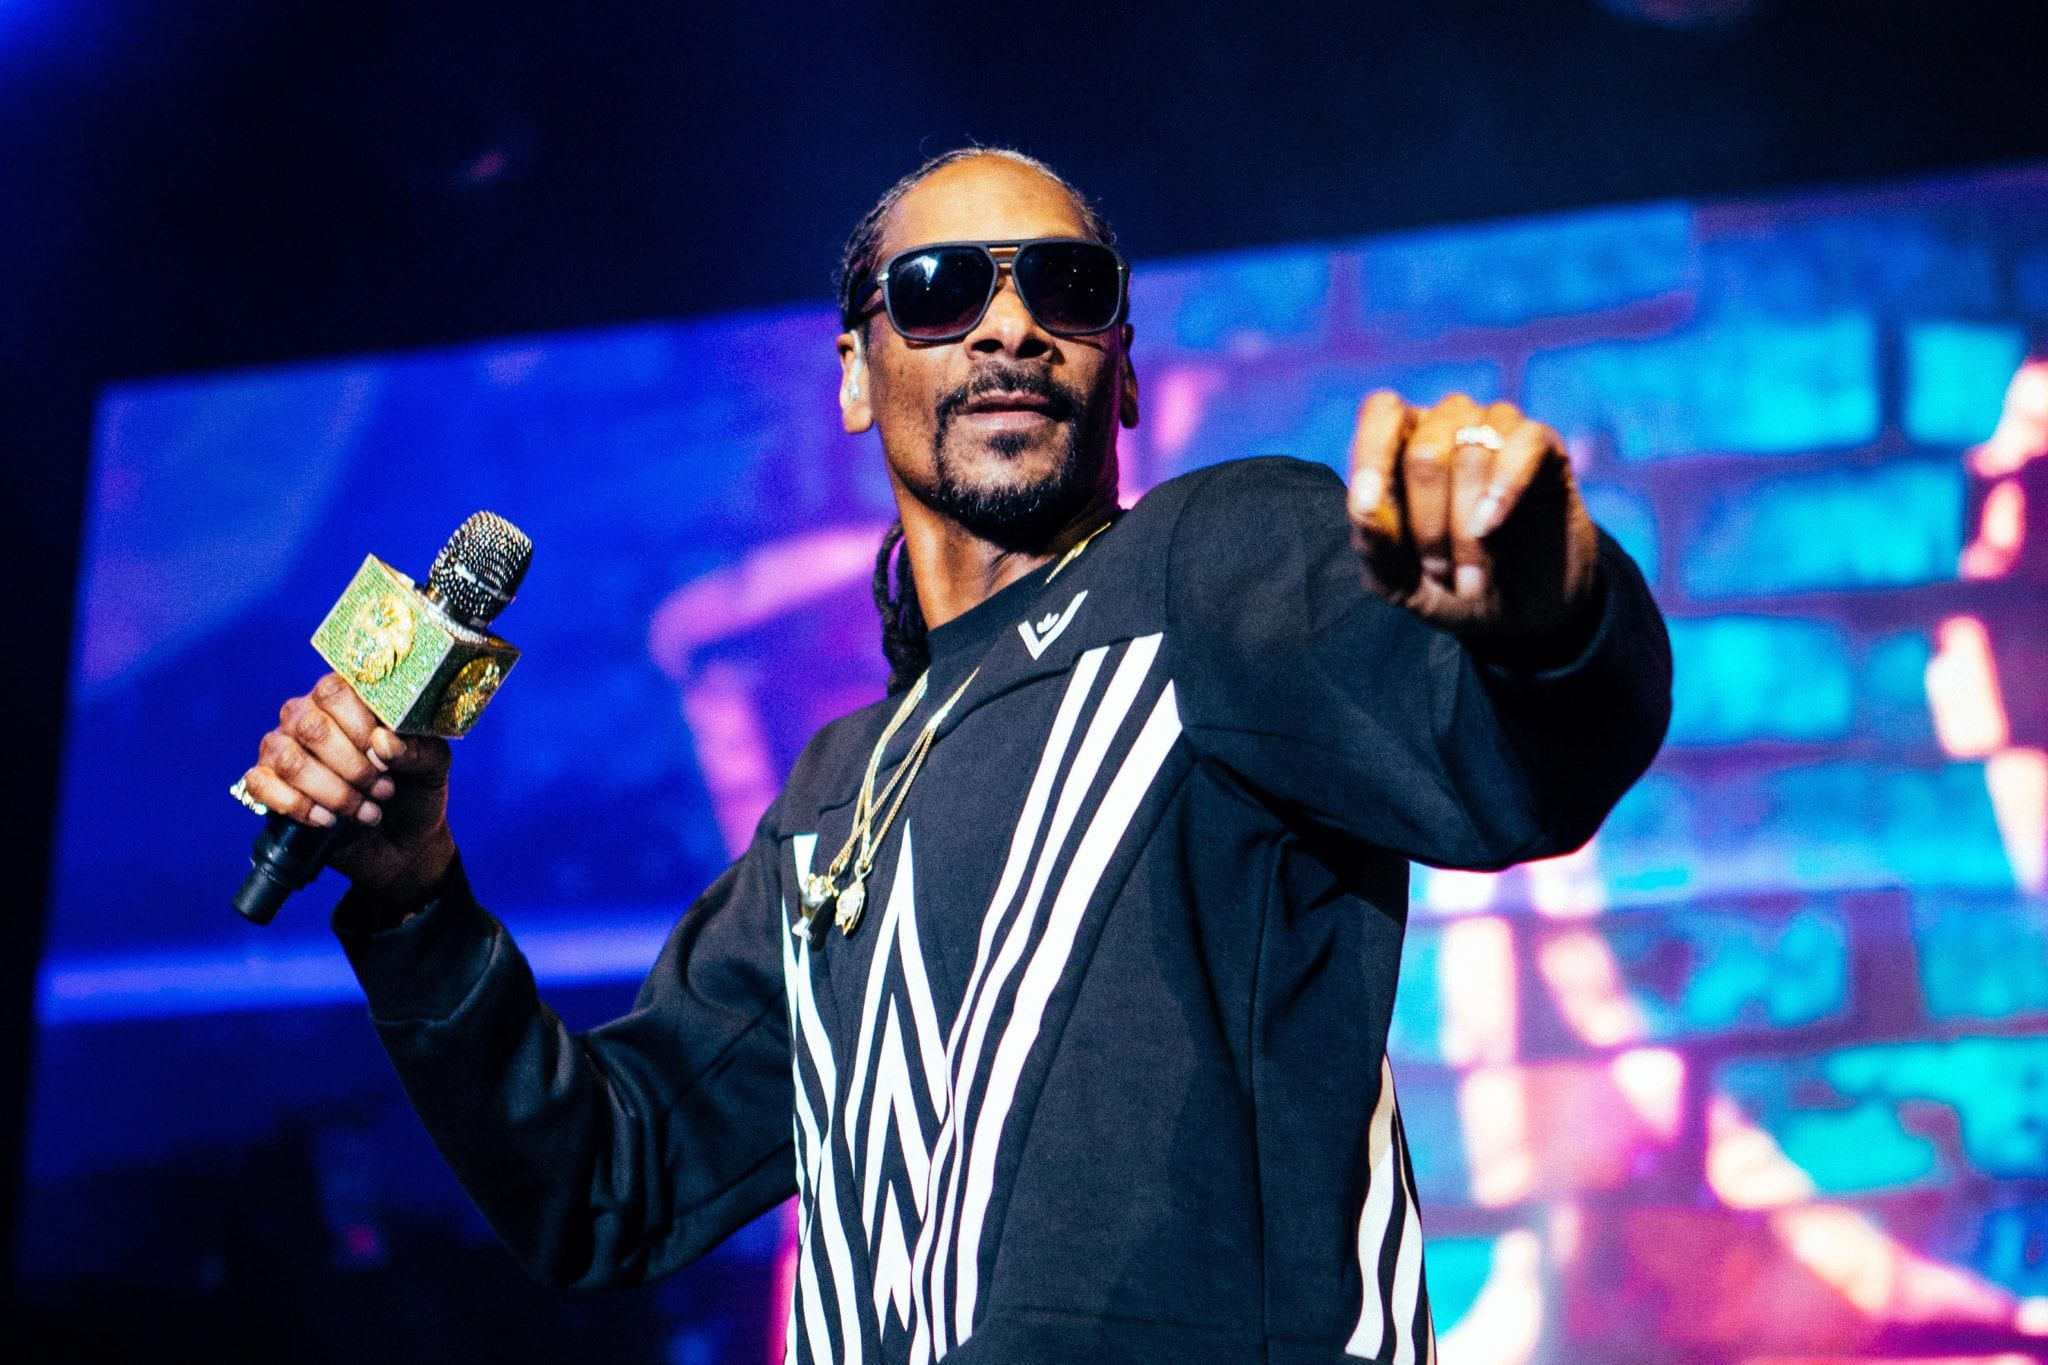 Snoop Dogg, Ja Rule, Ashanti, Method Man, Redman & More Performing at Summertime In The LBC in Long Beach, CA – July 6, 2018